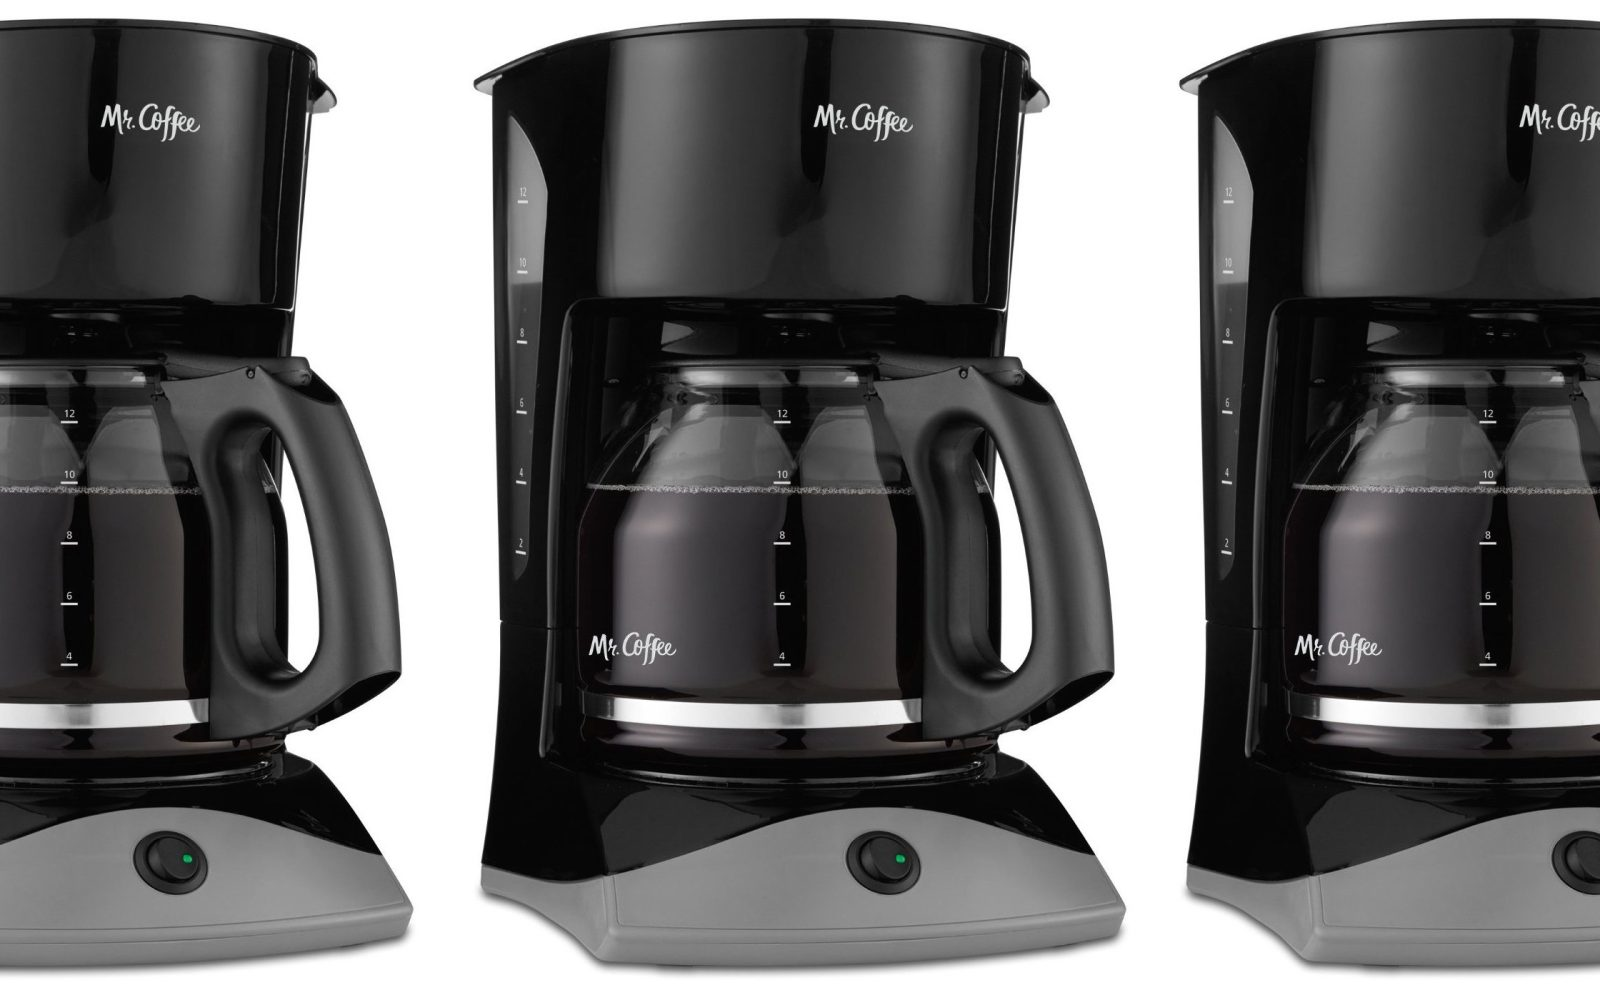 This Mr Coffee 12 Cup Coffeemaker Just Hit Its Amazon All Time Low